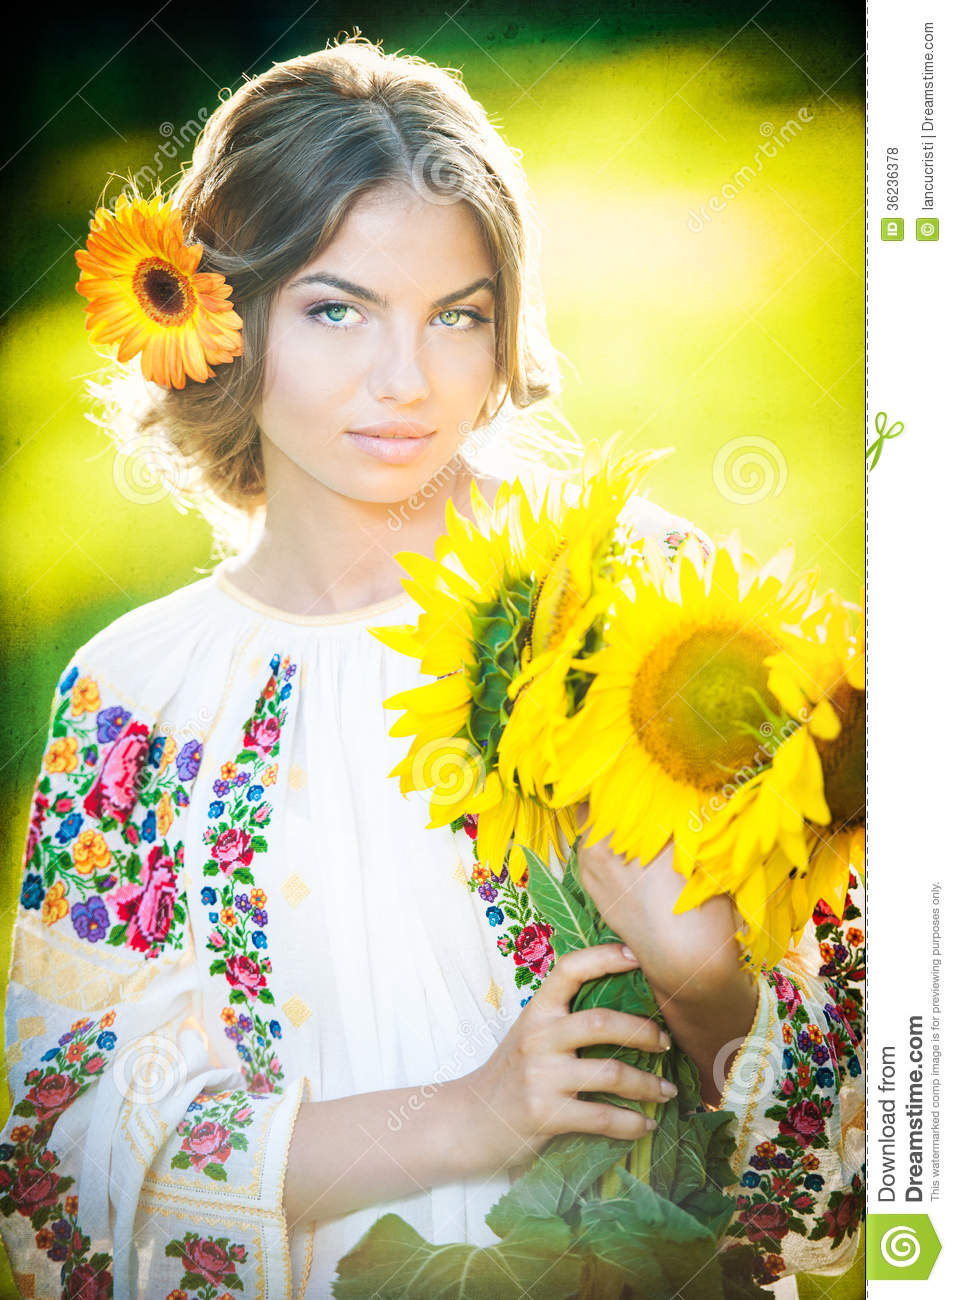 c773115514 Young girl wearing Romanian traditional blouse holding sunflowers outdoor  shot. Portrait of beautiful blonde girl with bright yellow flowers bouquet.